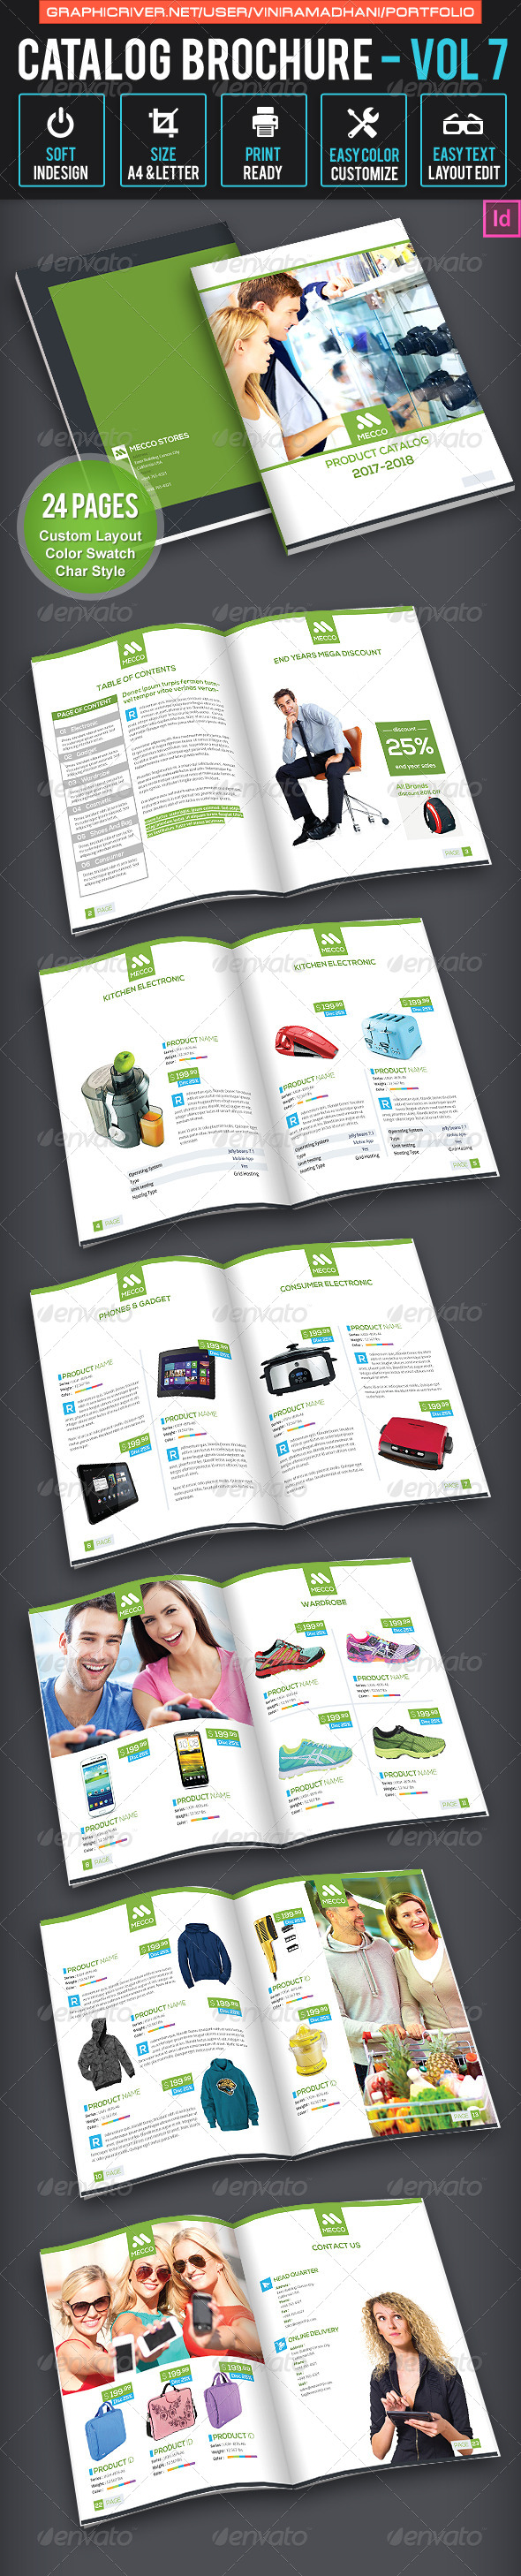 Product Catalogs Brochure Volume 7